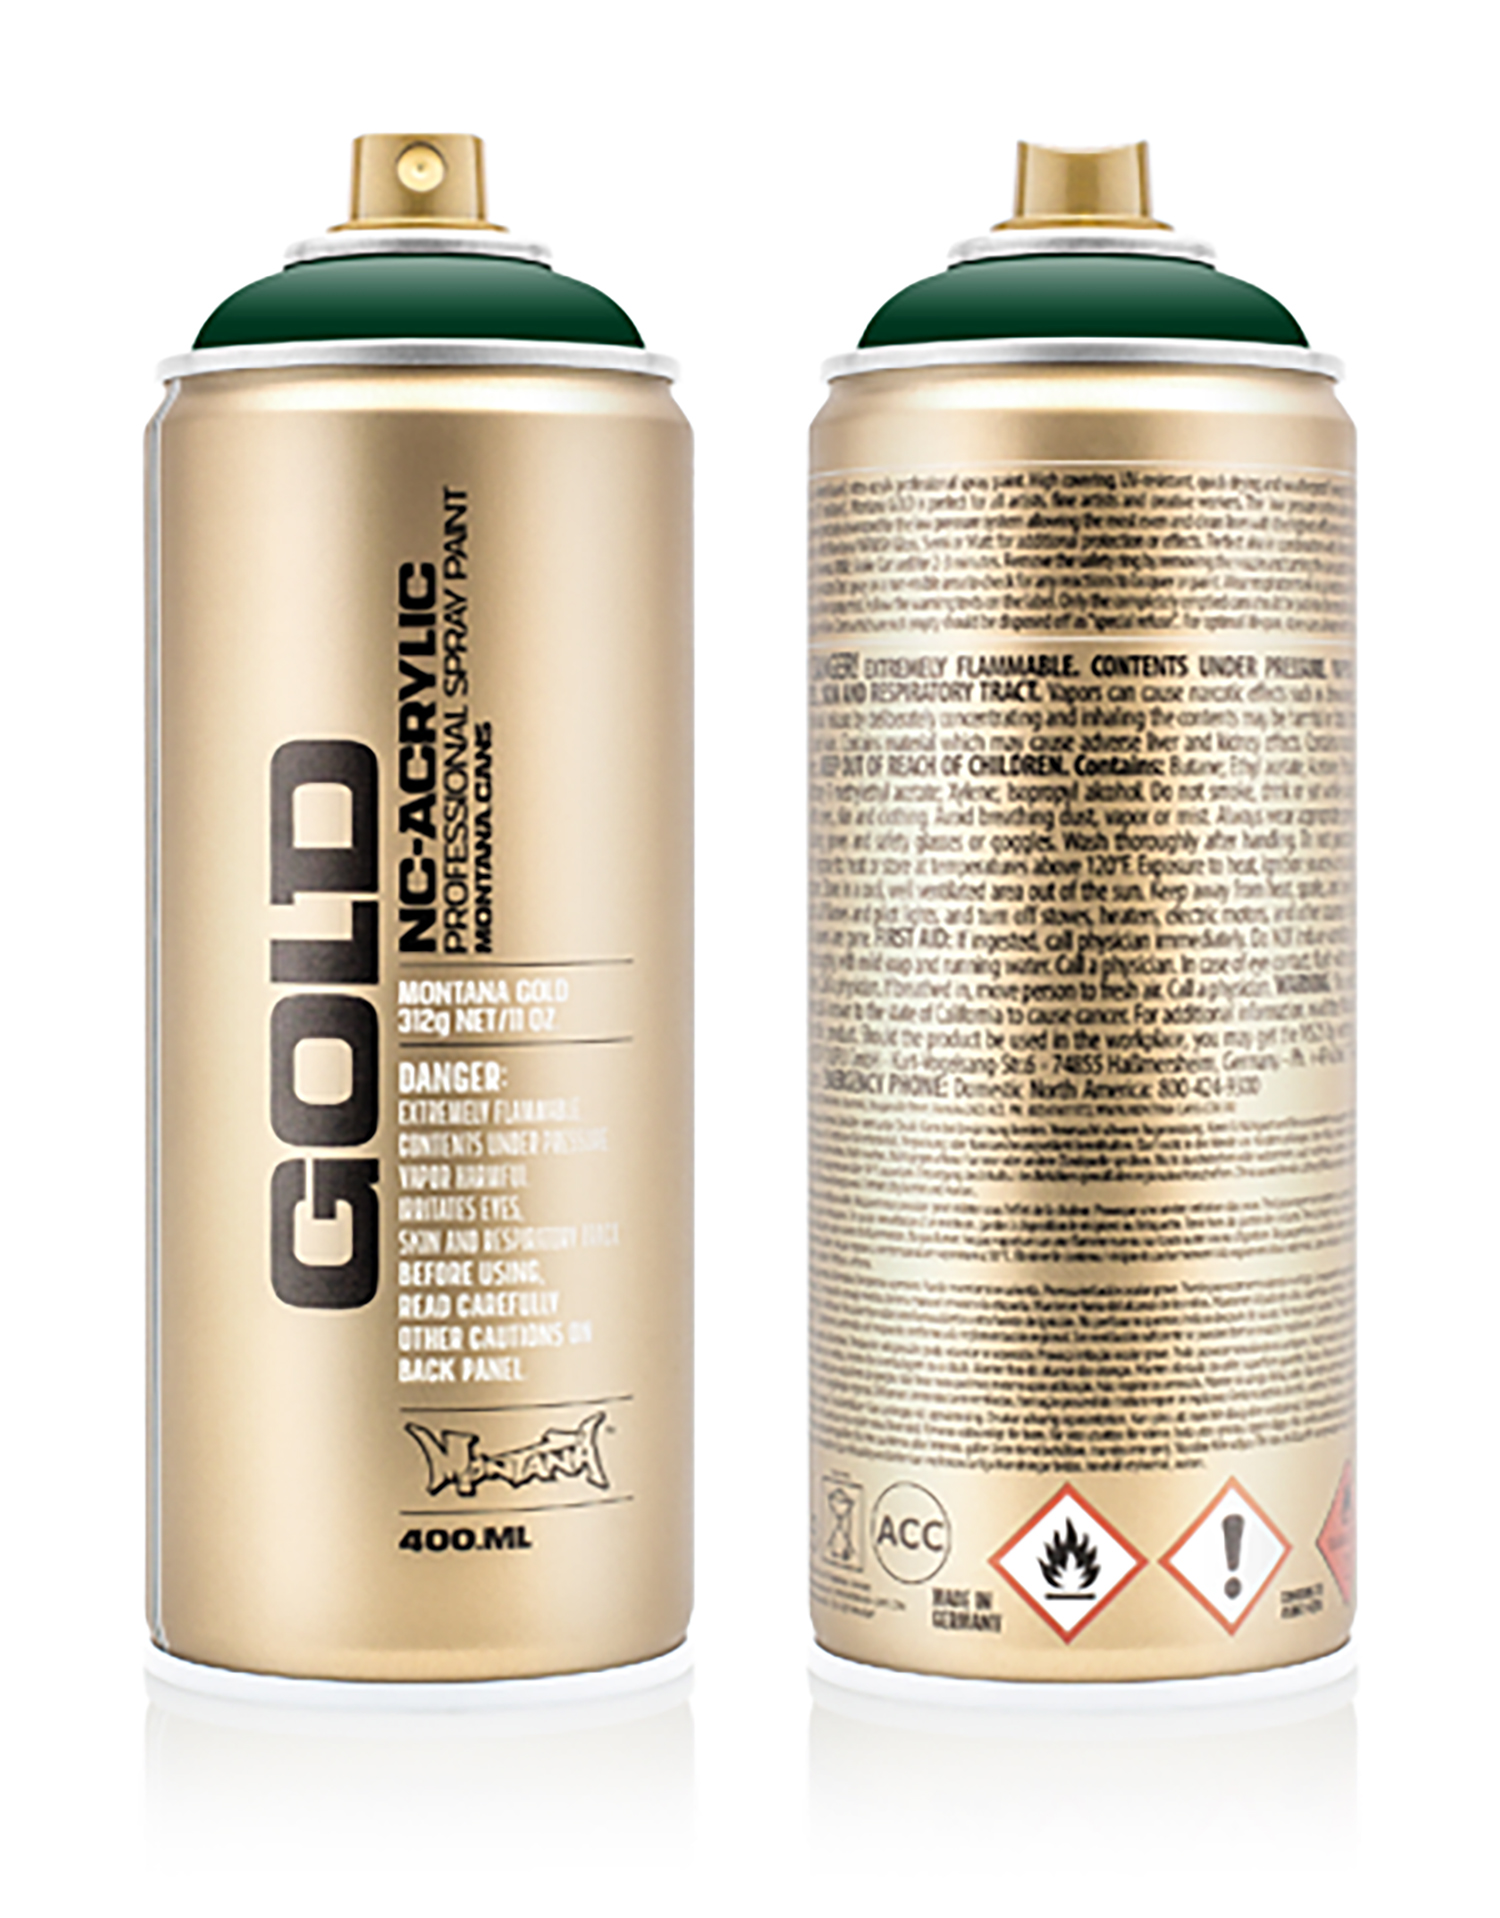 MONTANA-GOLD-SPRAY-400ML-G-6080